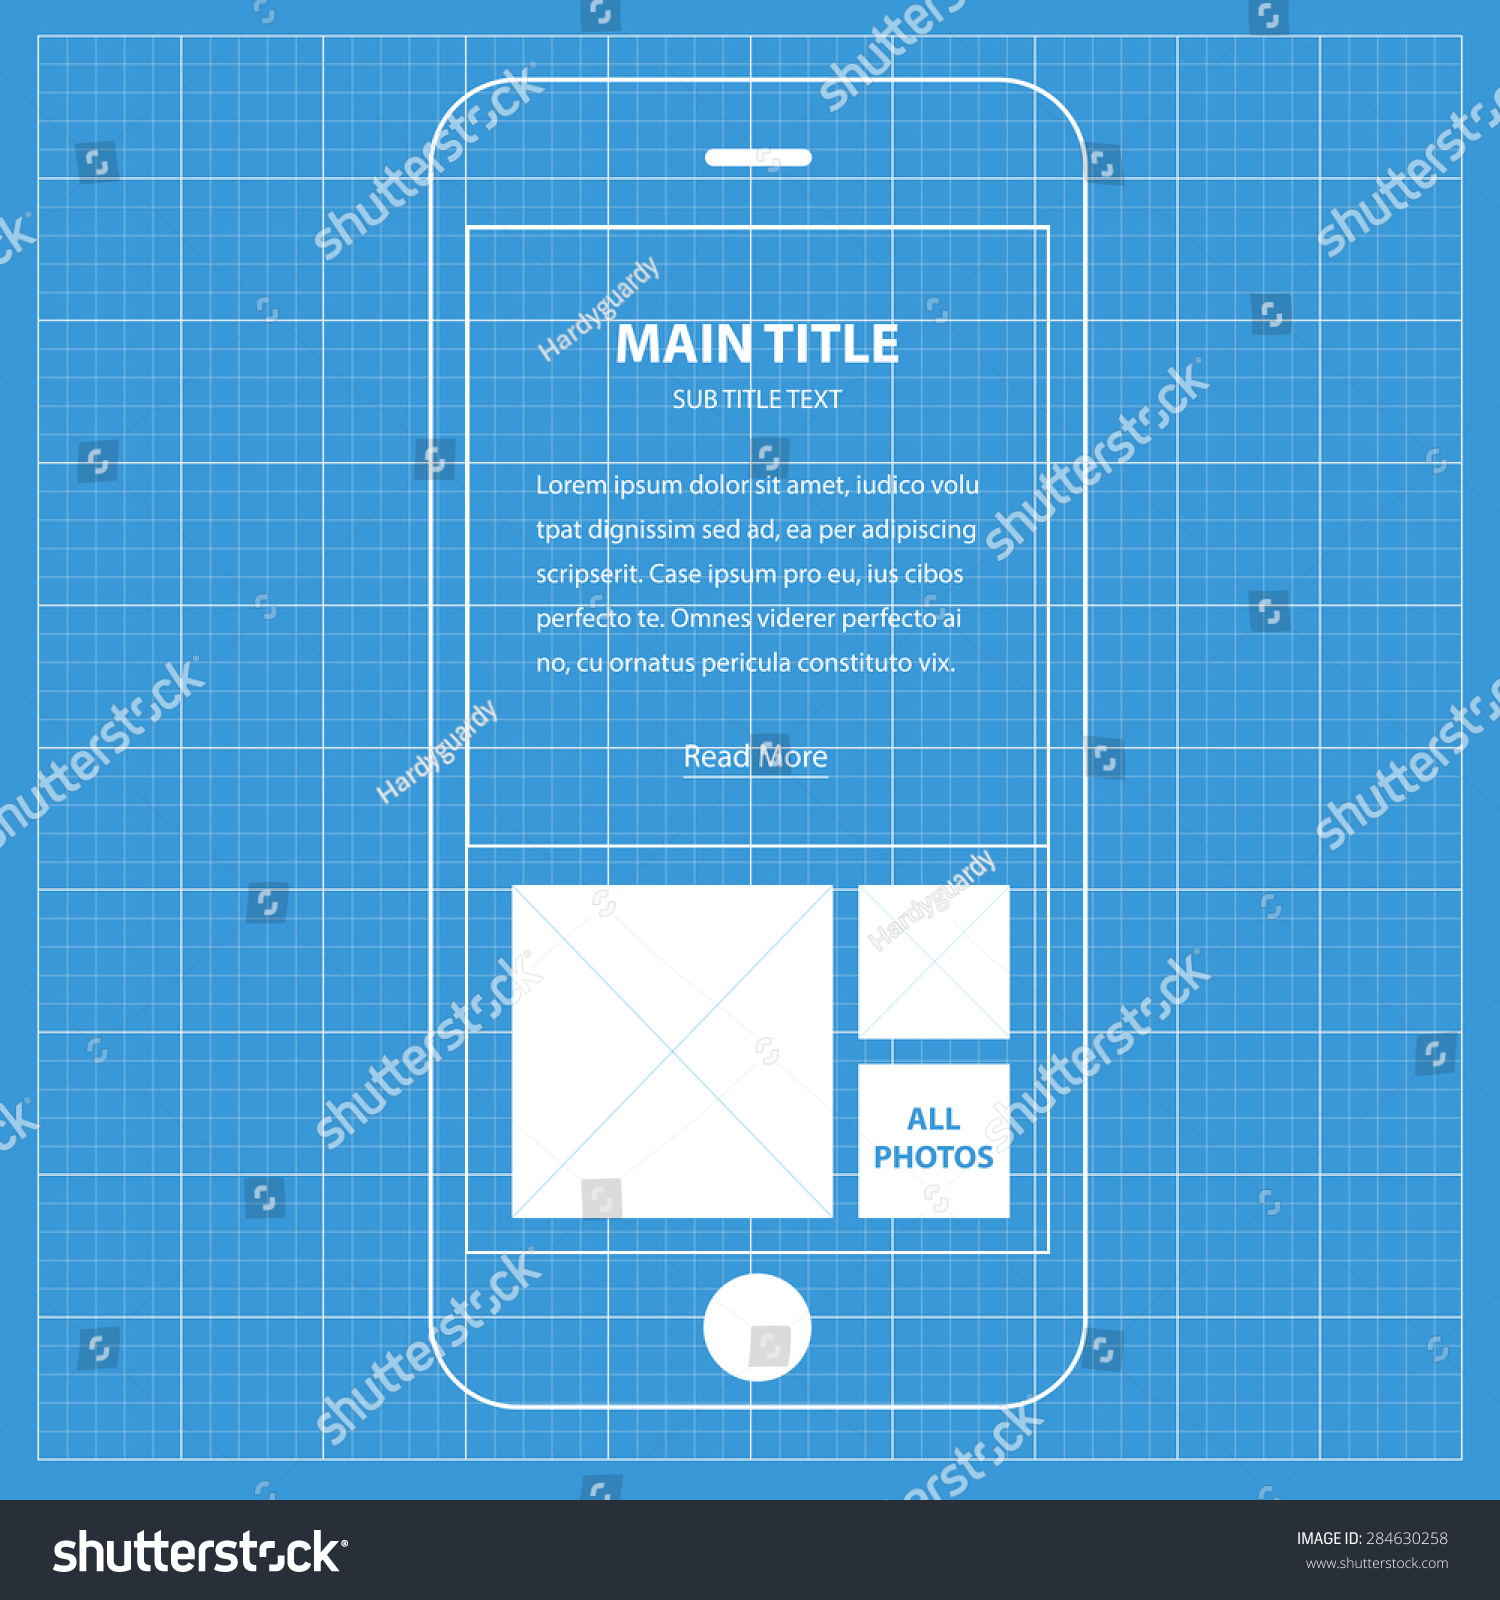 Wireframe blueprint mobile app ui kit stock photo photo vector wireframe blueprint mobile app ui kit about with text info screen malvernweather Choice Image